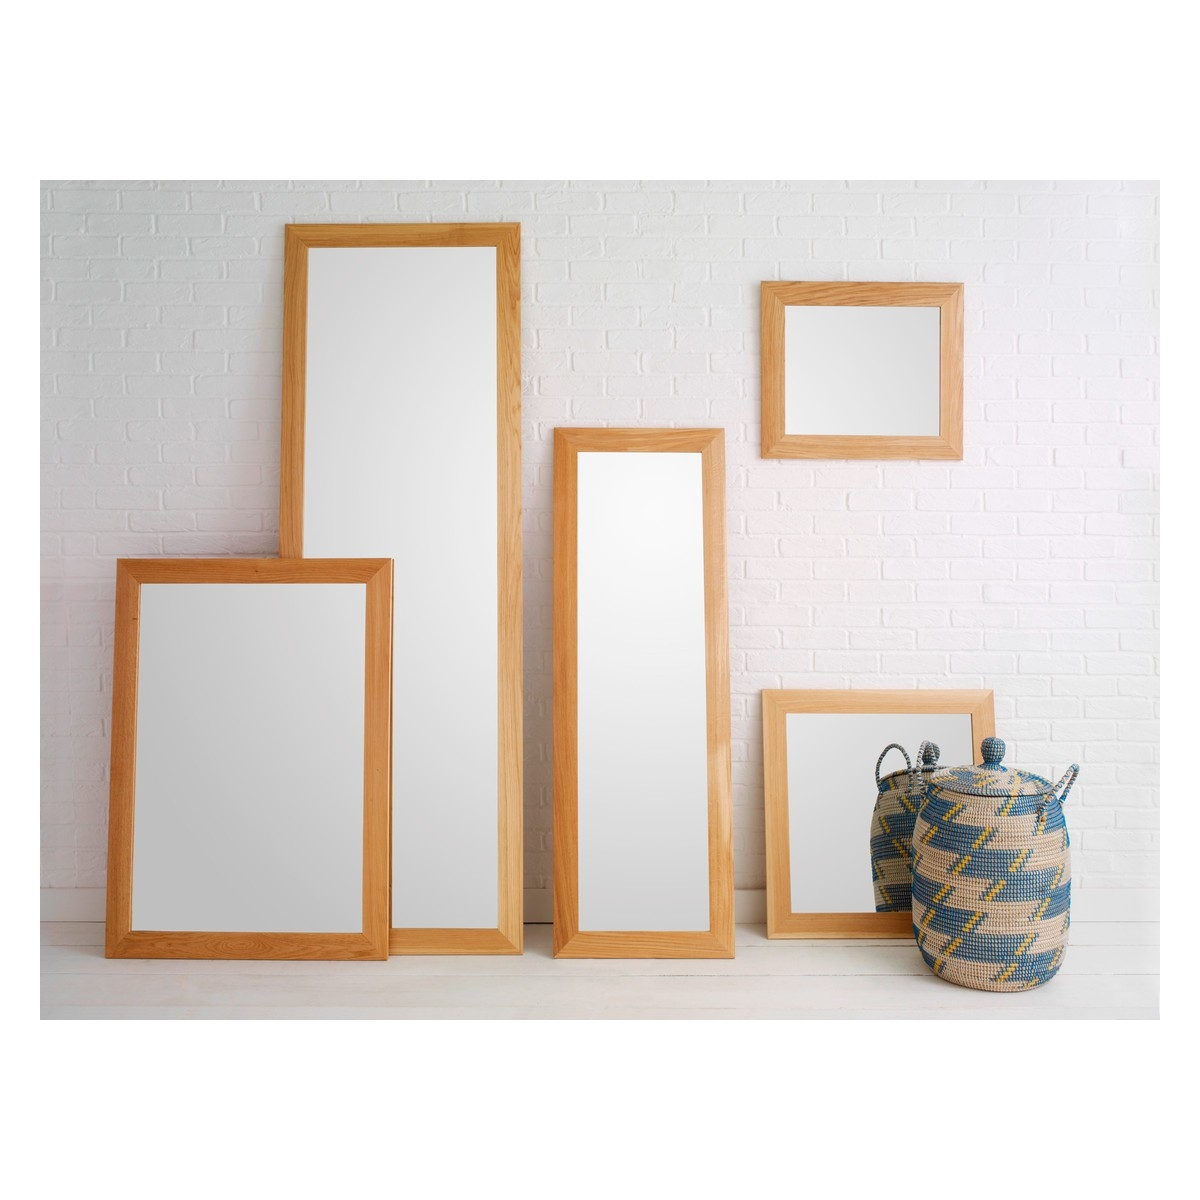 Marlo 70 X 100cm Rectangular Oak Wall Mirror Buy Now At Habitat Uk Pertaining To Oak Mirror (Image 7 of 15)